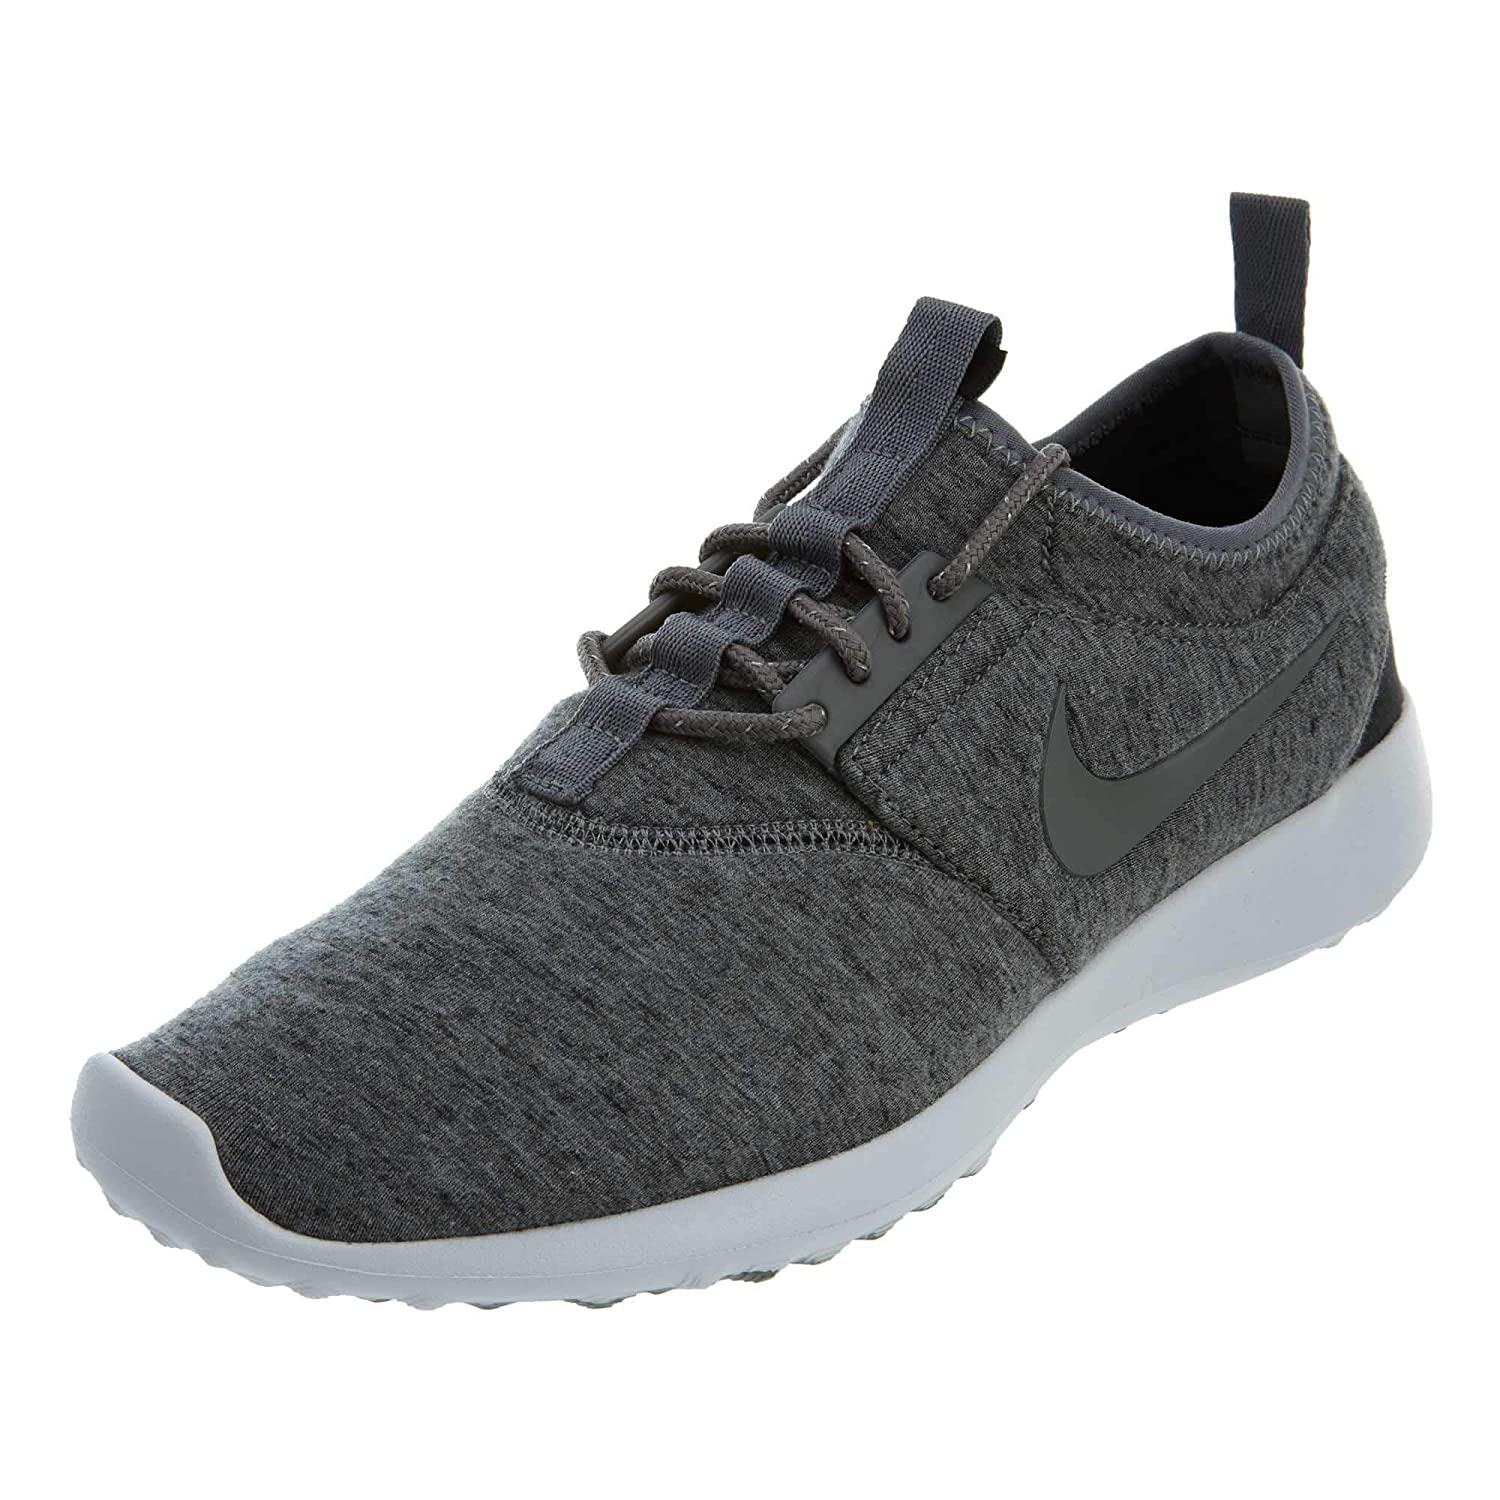 8ba88a534a Amazon.com   Nike Juvenate Tp Casual Shoes Tumbled Grey Womens Style ...